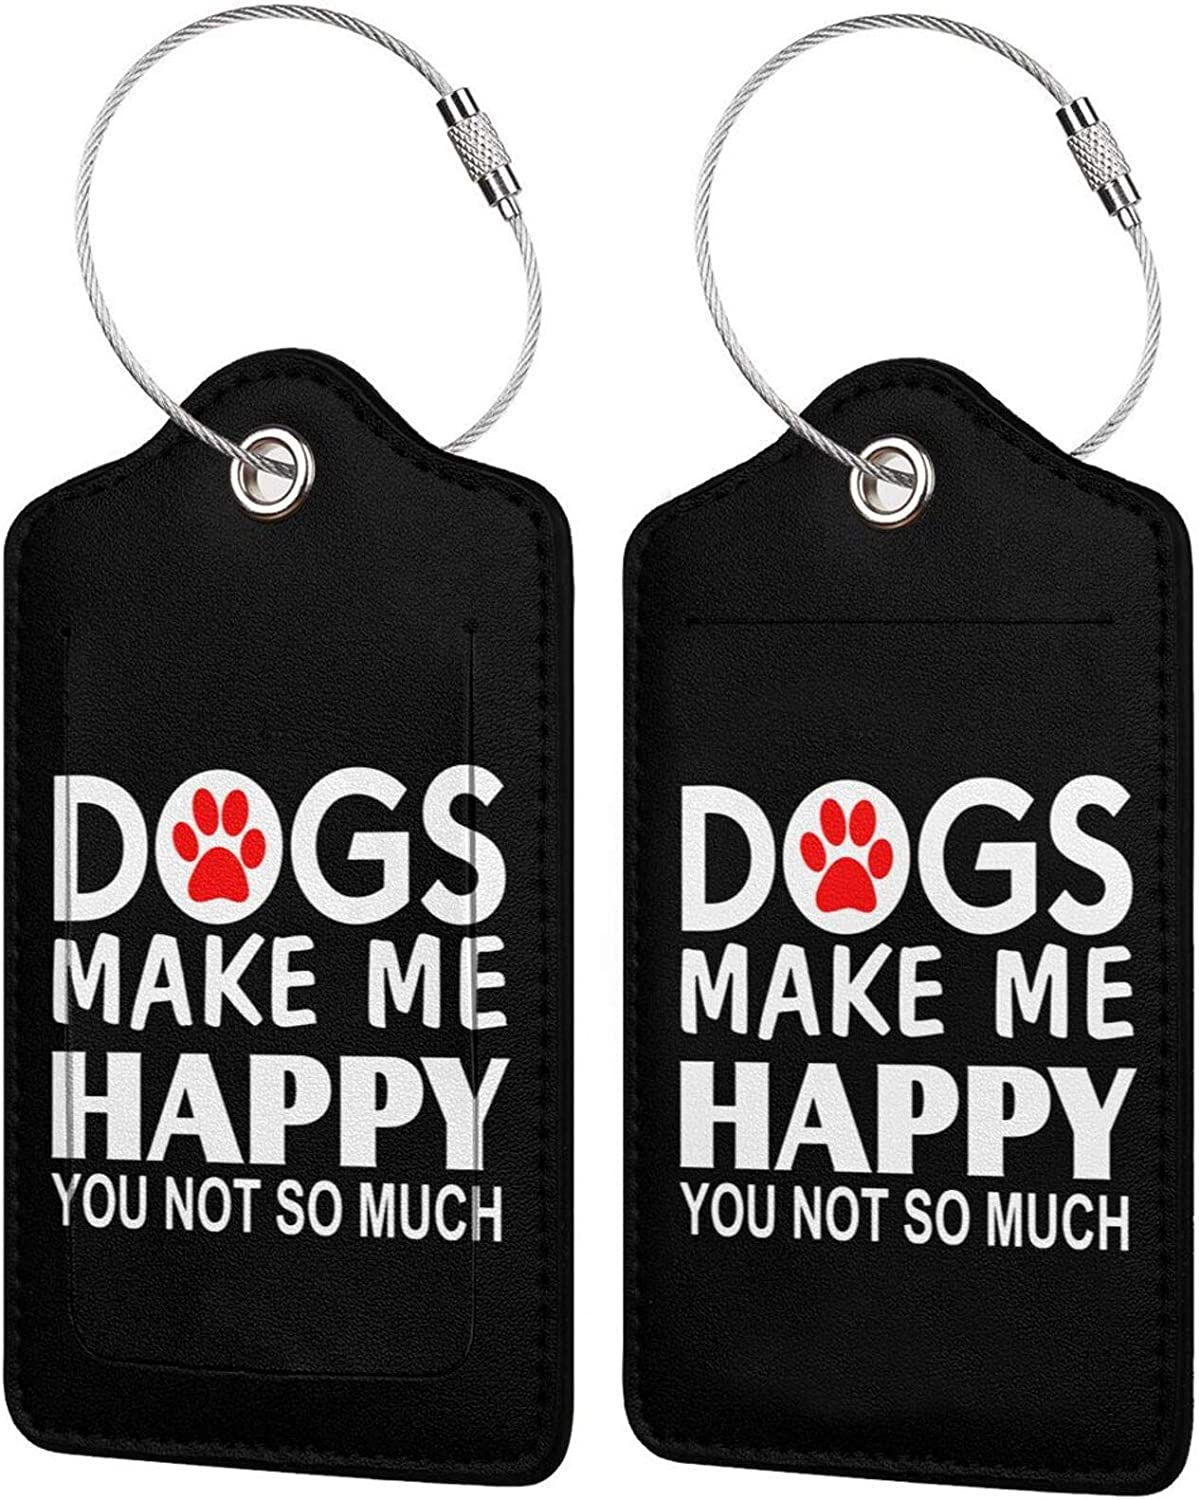 Dogs Make Reservation New products world's highest quality popular Me Happy You Not So Luggage Travel tag PU Much Leather